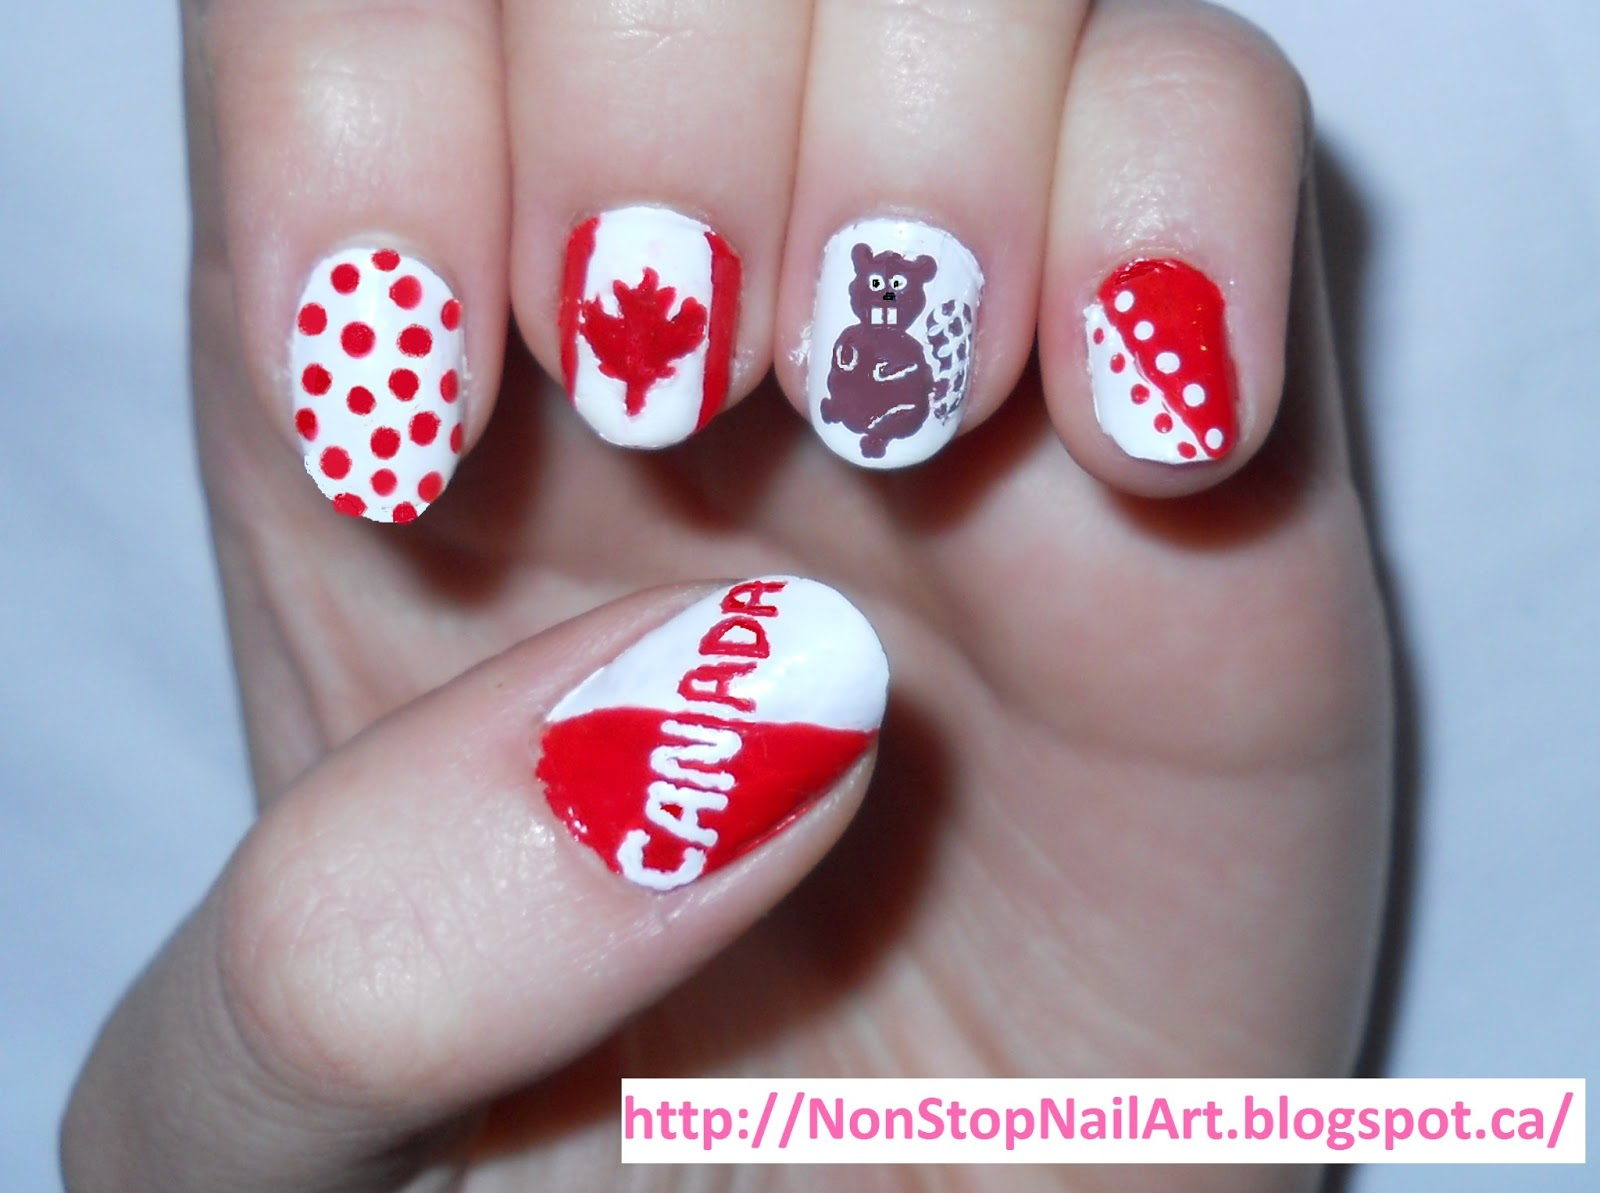 Non-Stop Nail Art: Canada Day Nails!